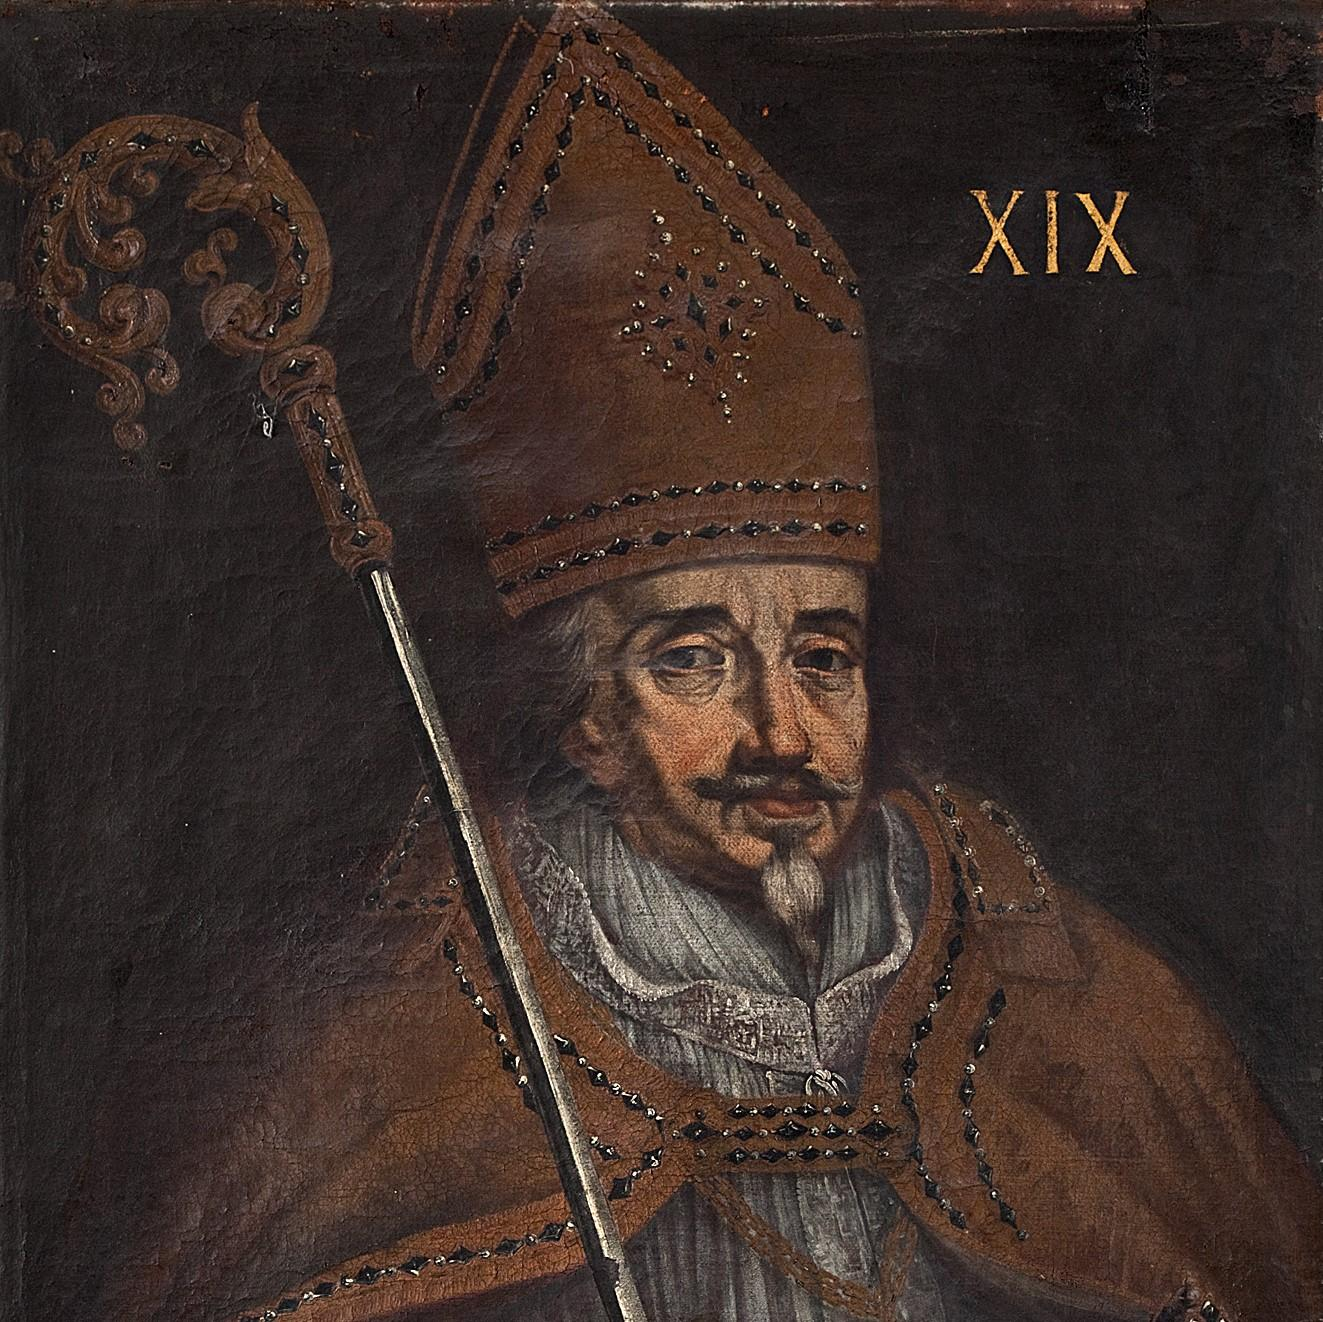 Portrait of the Bishop Bruno of Schauenburgh is displyed in the Archiepiscopal Castle. Besides promoting Kroměříž to the town, there had also built the Church of St. Moritz during his episcopate, many fountains and other architectural structures that you can find in the town even in the present day. - © Archive of the Archiepiscopal Castle Kroměříž